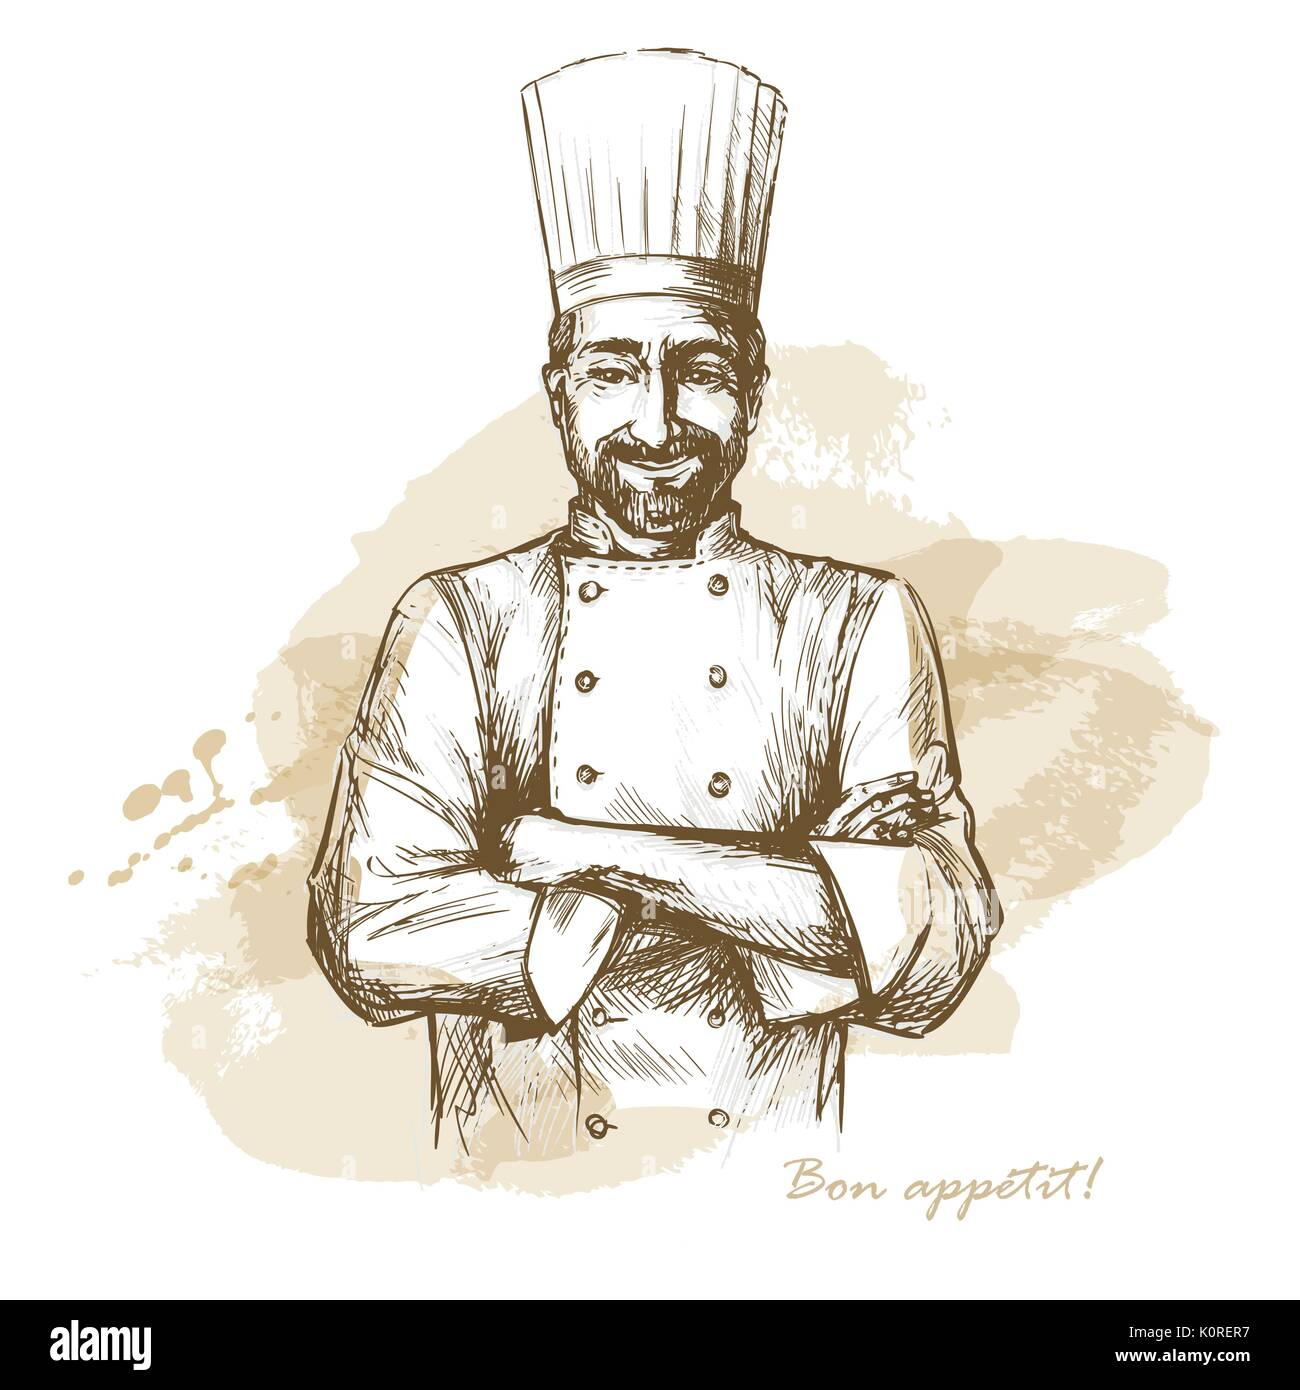 Smiling and happy chef. Vector hand drawn illustration on artistic  watercolor background. 00b4488aa487